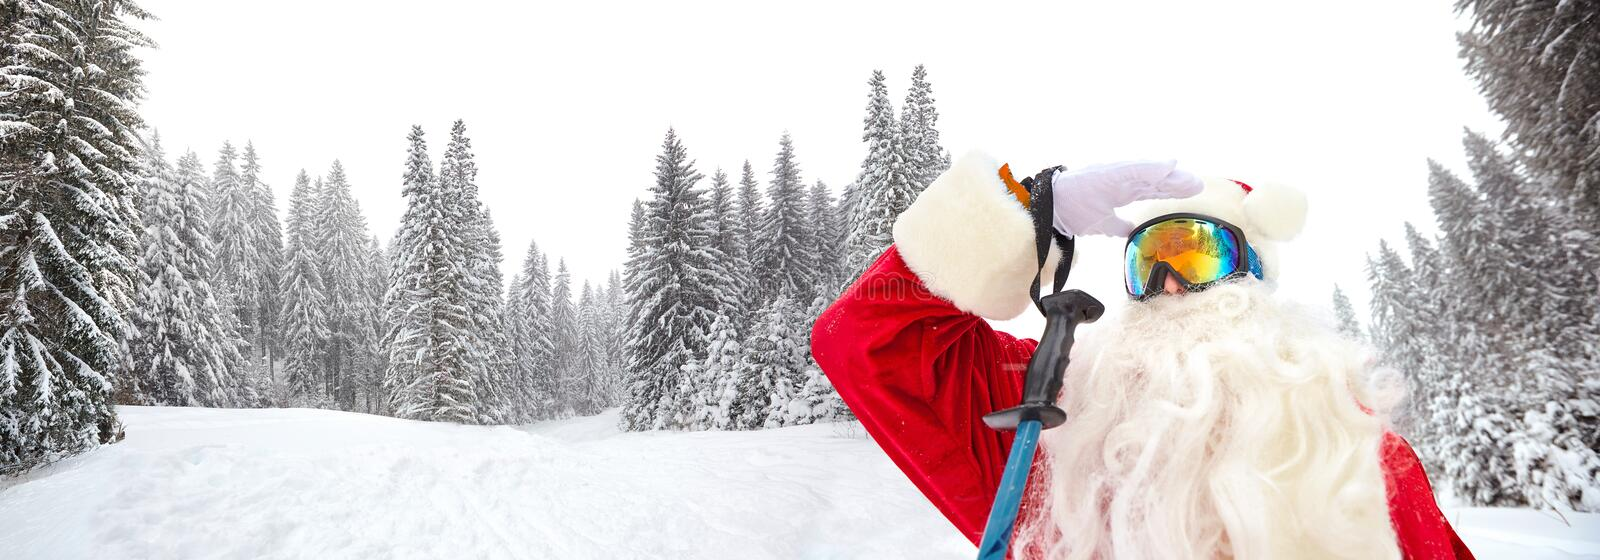 Santa Claus skier on the background of the ski landscape. royalty free stock images